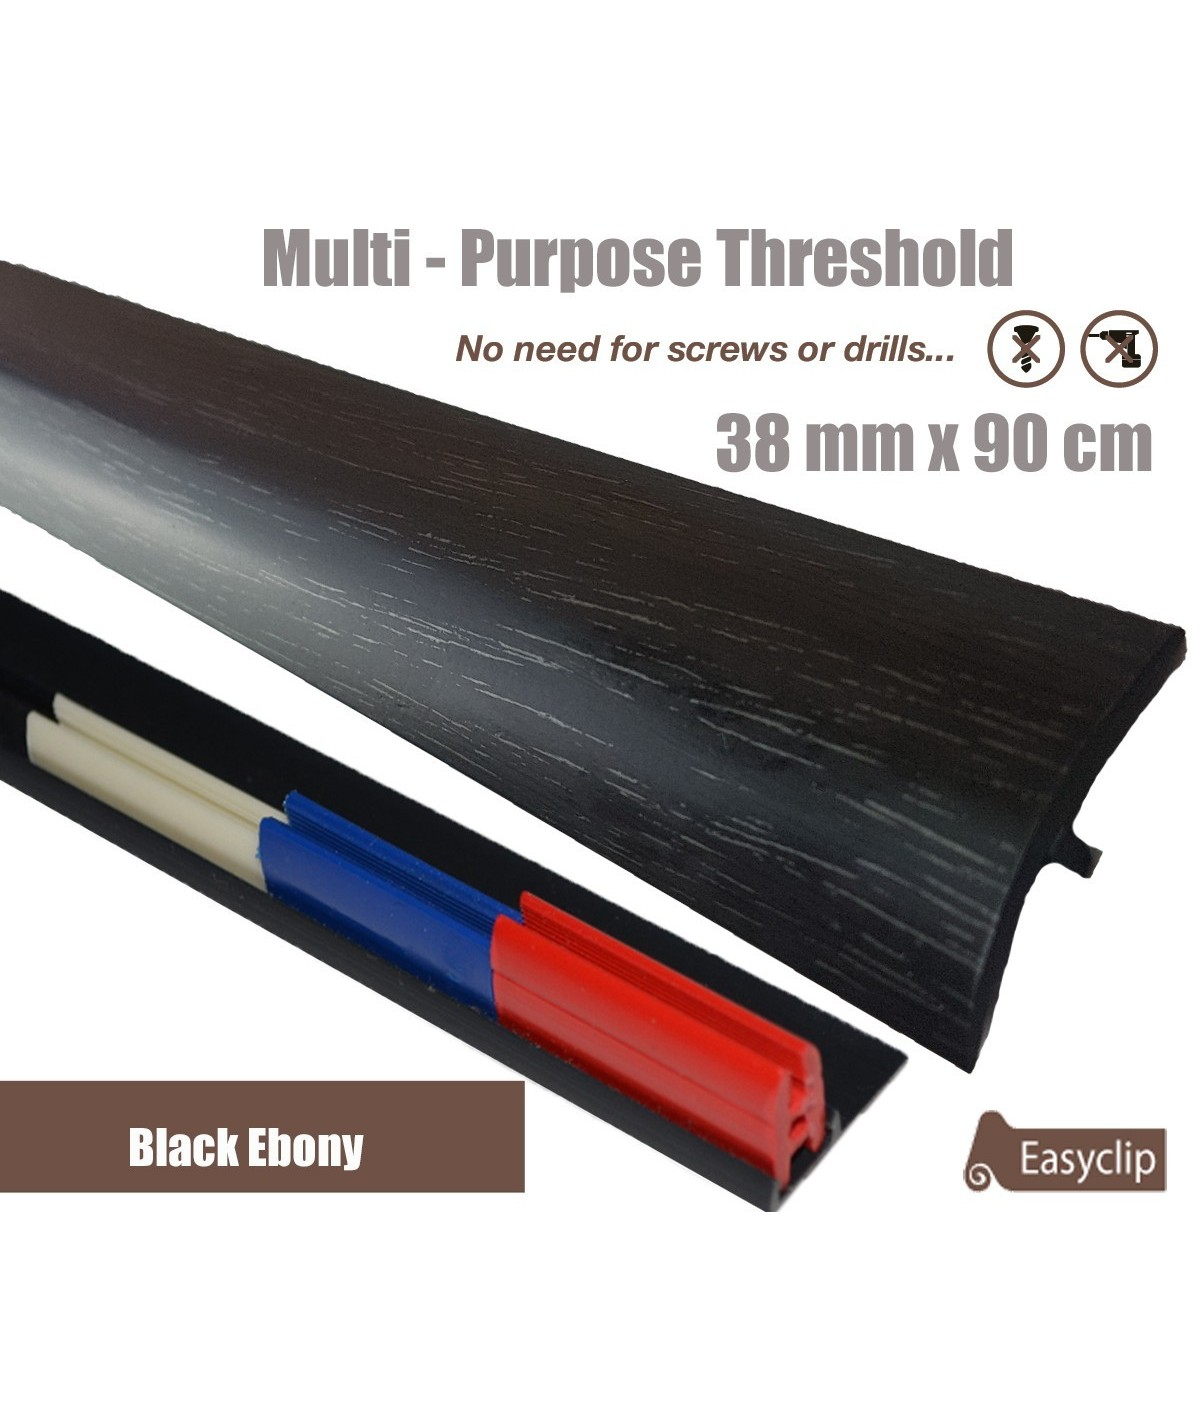 Black Ebomy Adhesive Laminate Door Threshold Strip 38mm x 90cm Multi-Height/Pivots